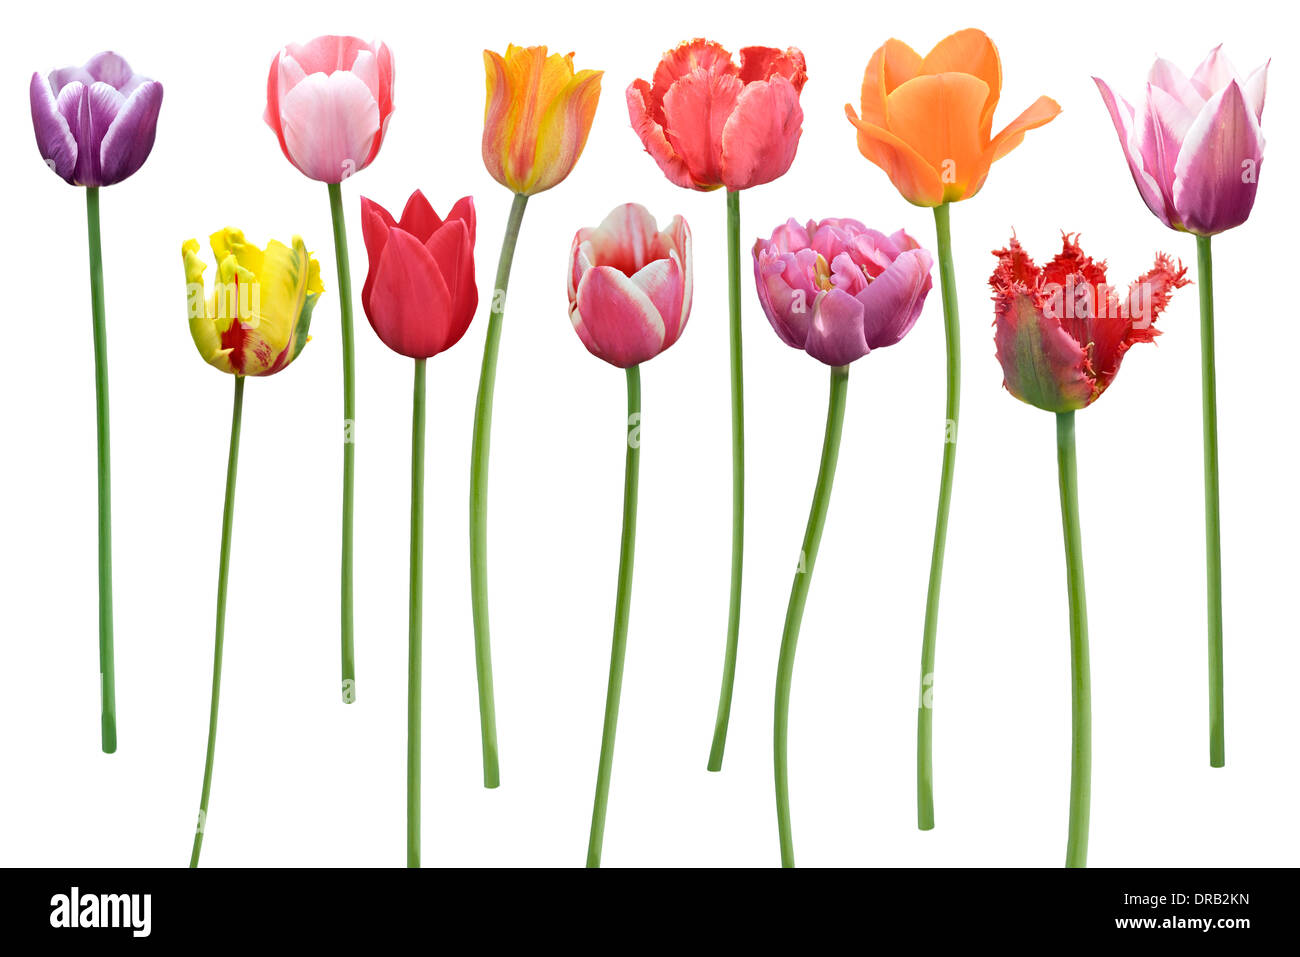 Colorful Tulips Flowers In A Row Isolated On White Background Stock Photo